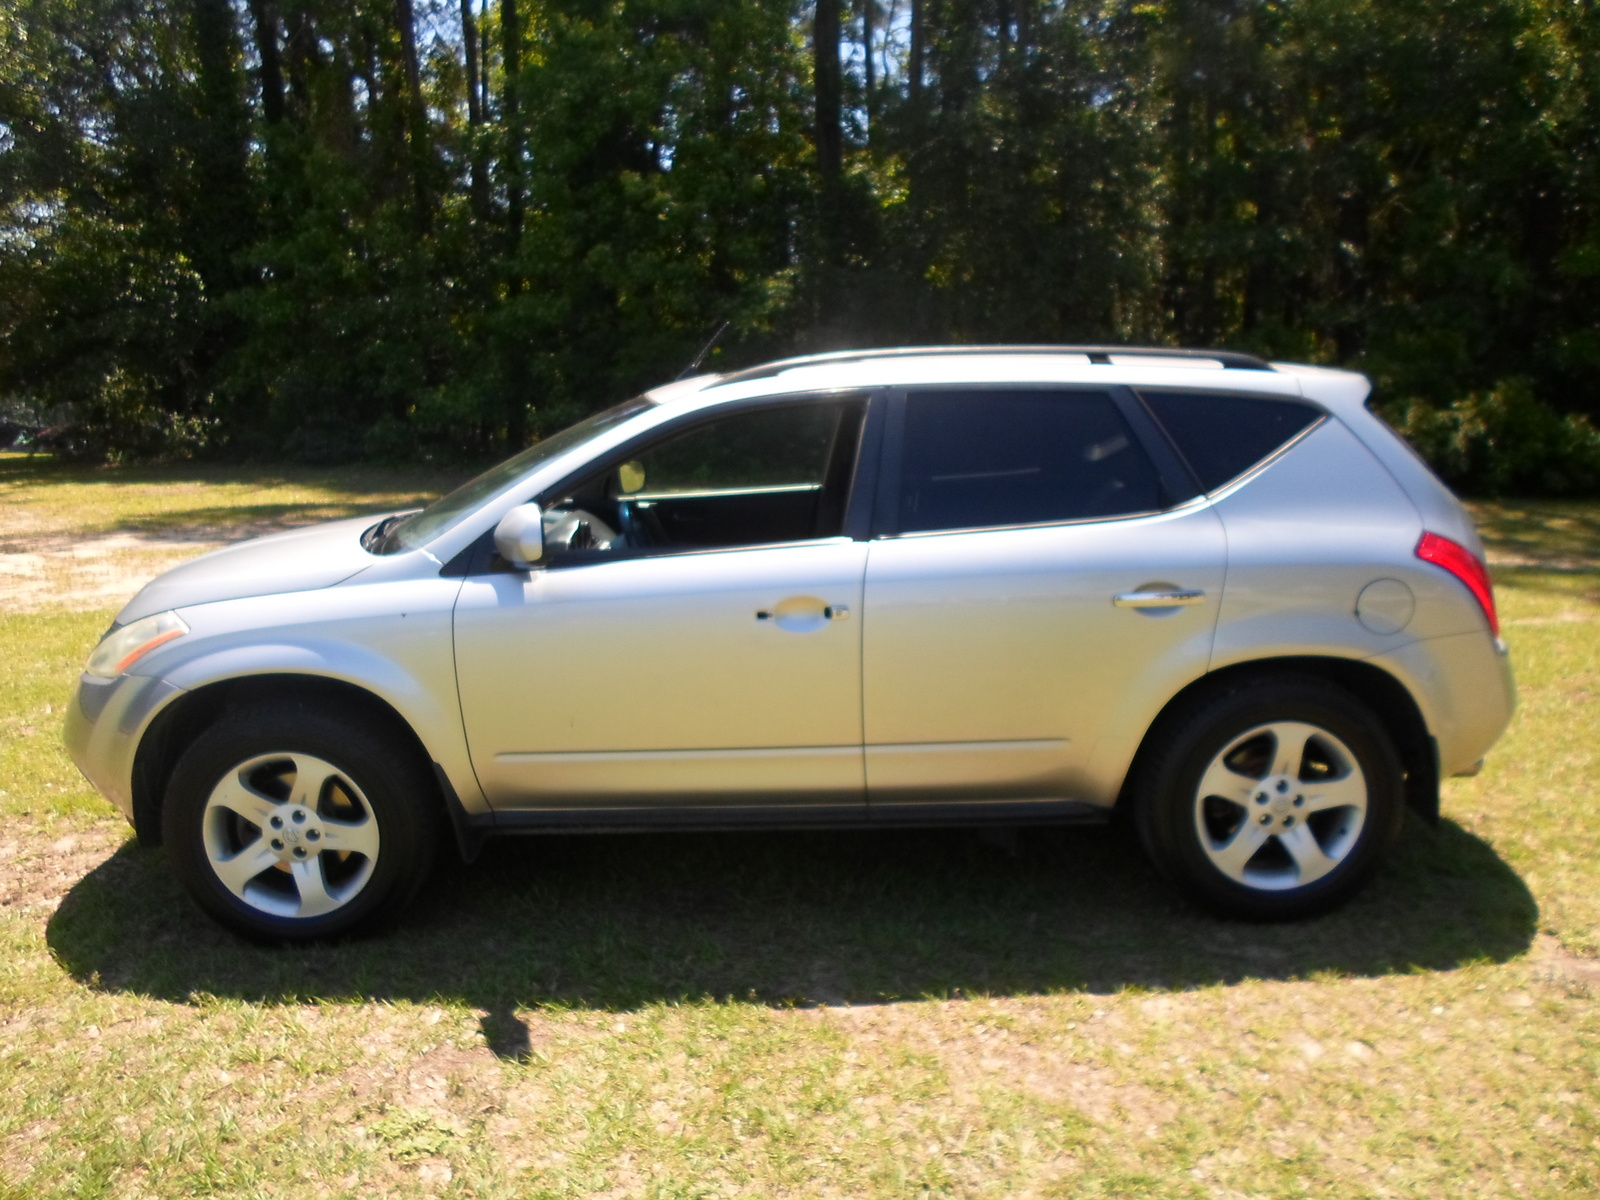 Sunny King Ford >> 2004 Nissan Murano - Pictures - CarGurus